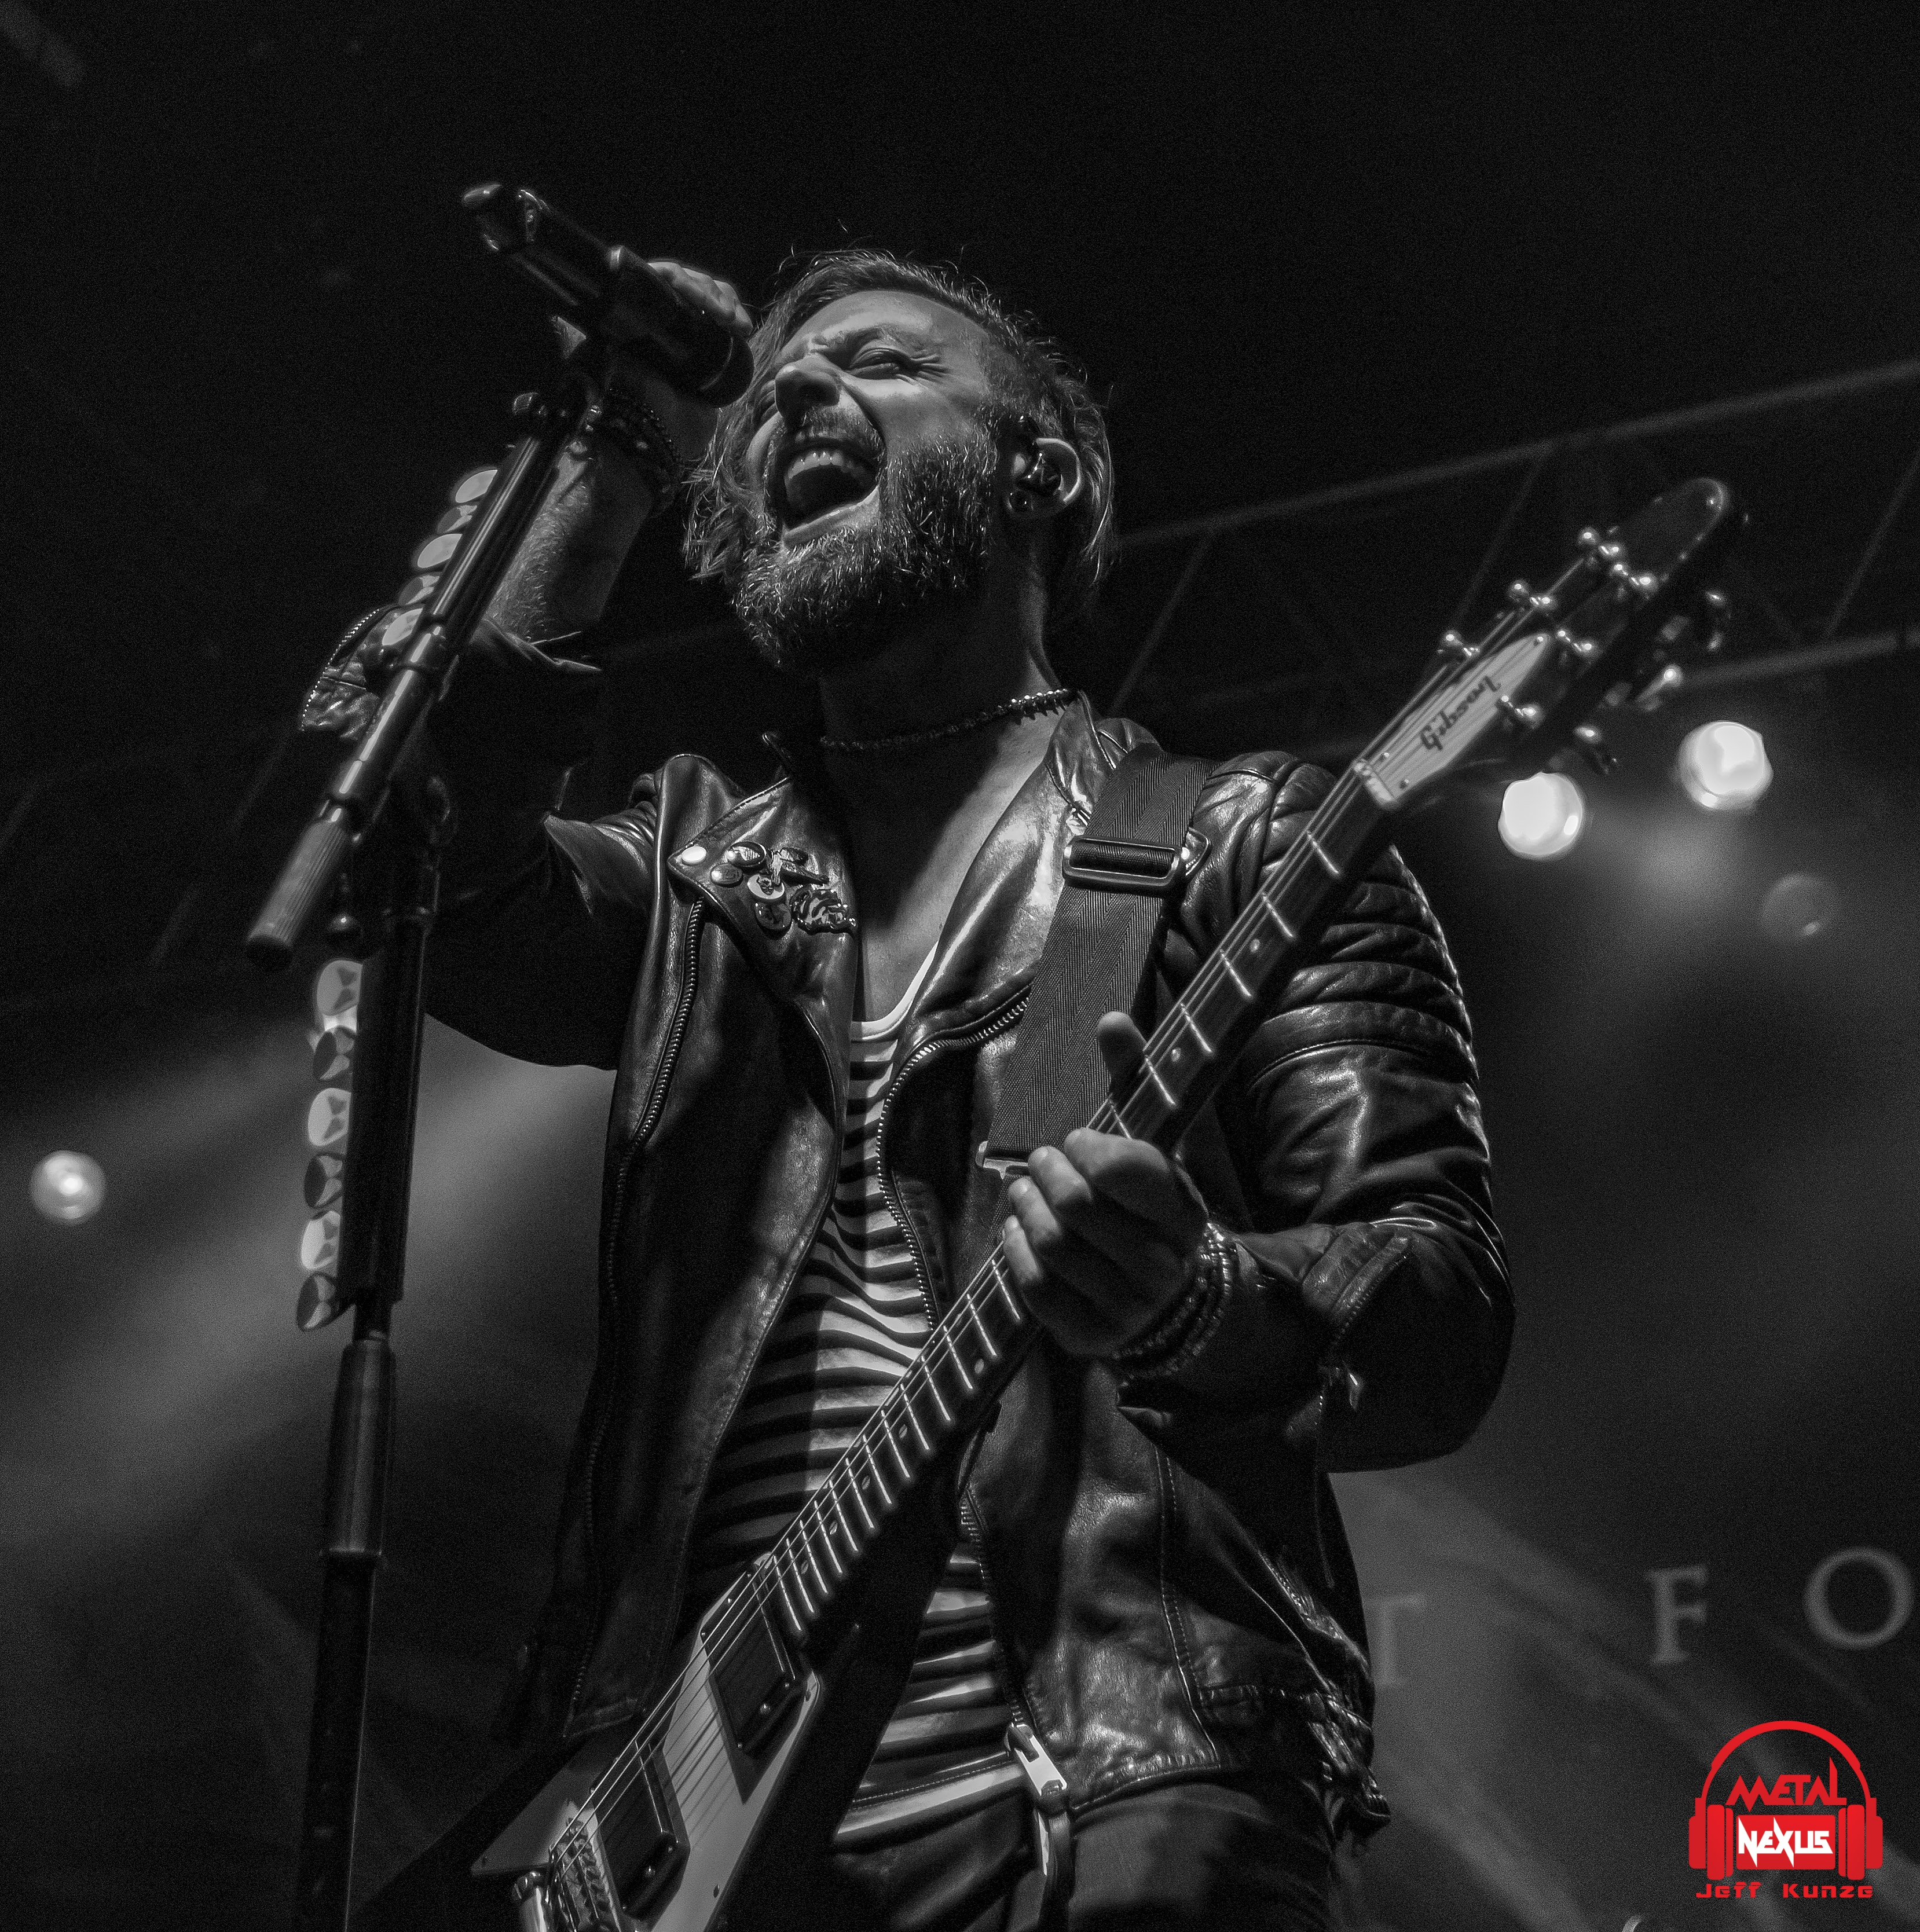 BULLET FOR MY VALENTINE & BAD OMENS In Maplewood ... | 3316 x 3337 jpeg 7922kB